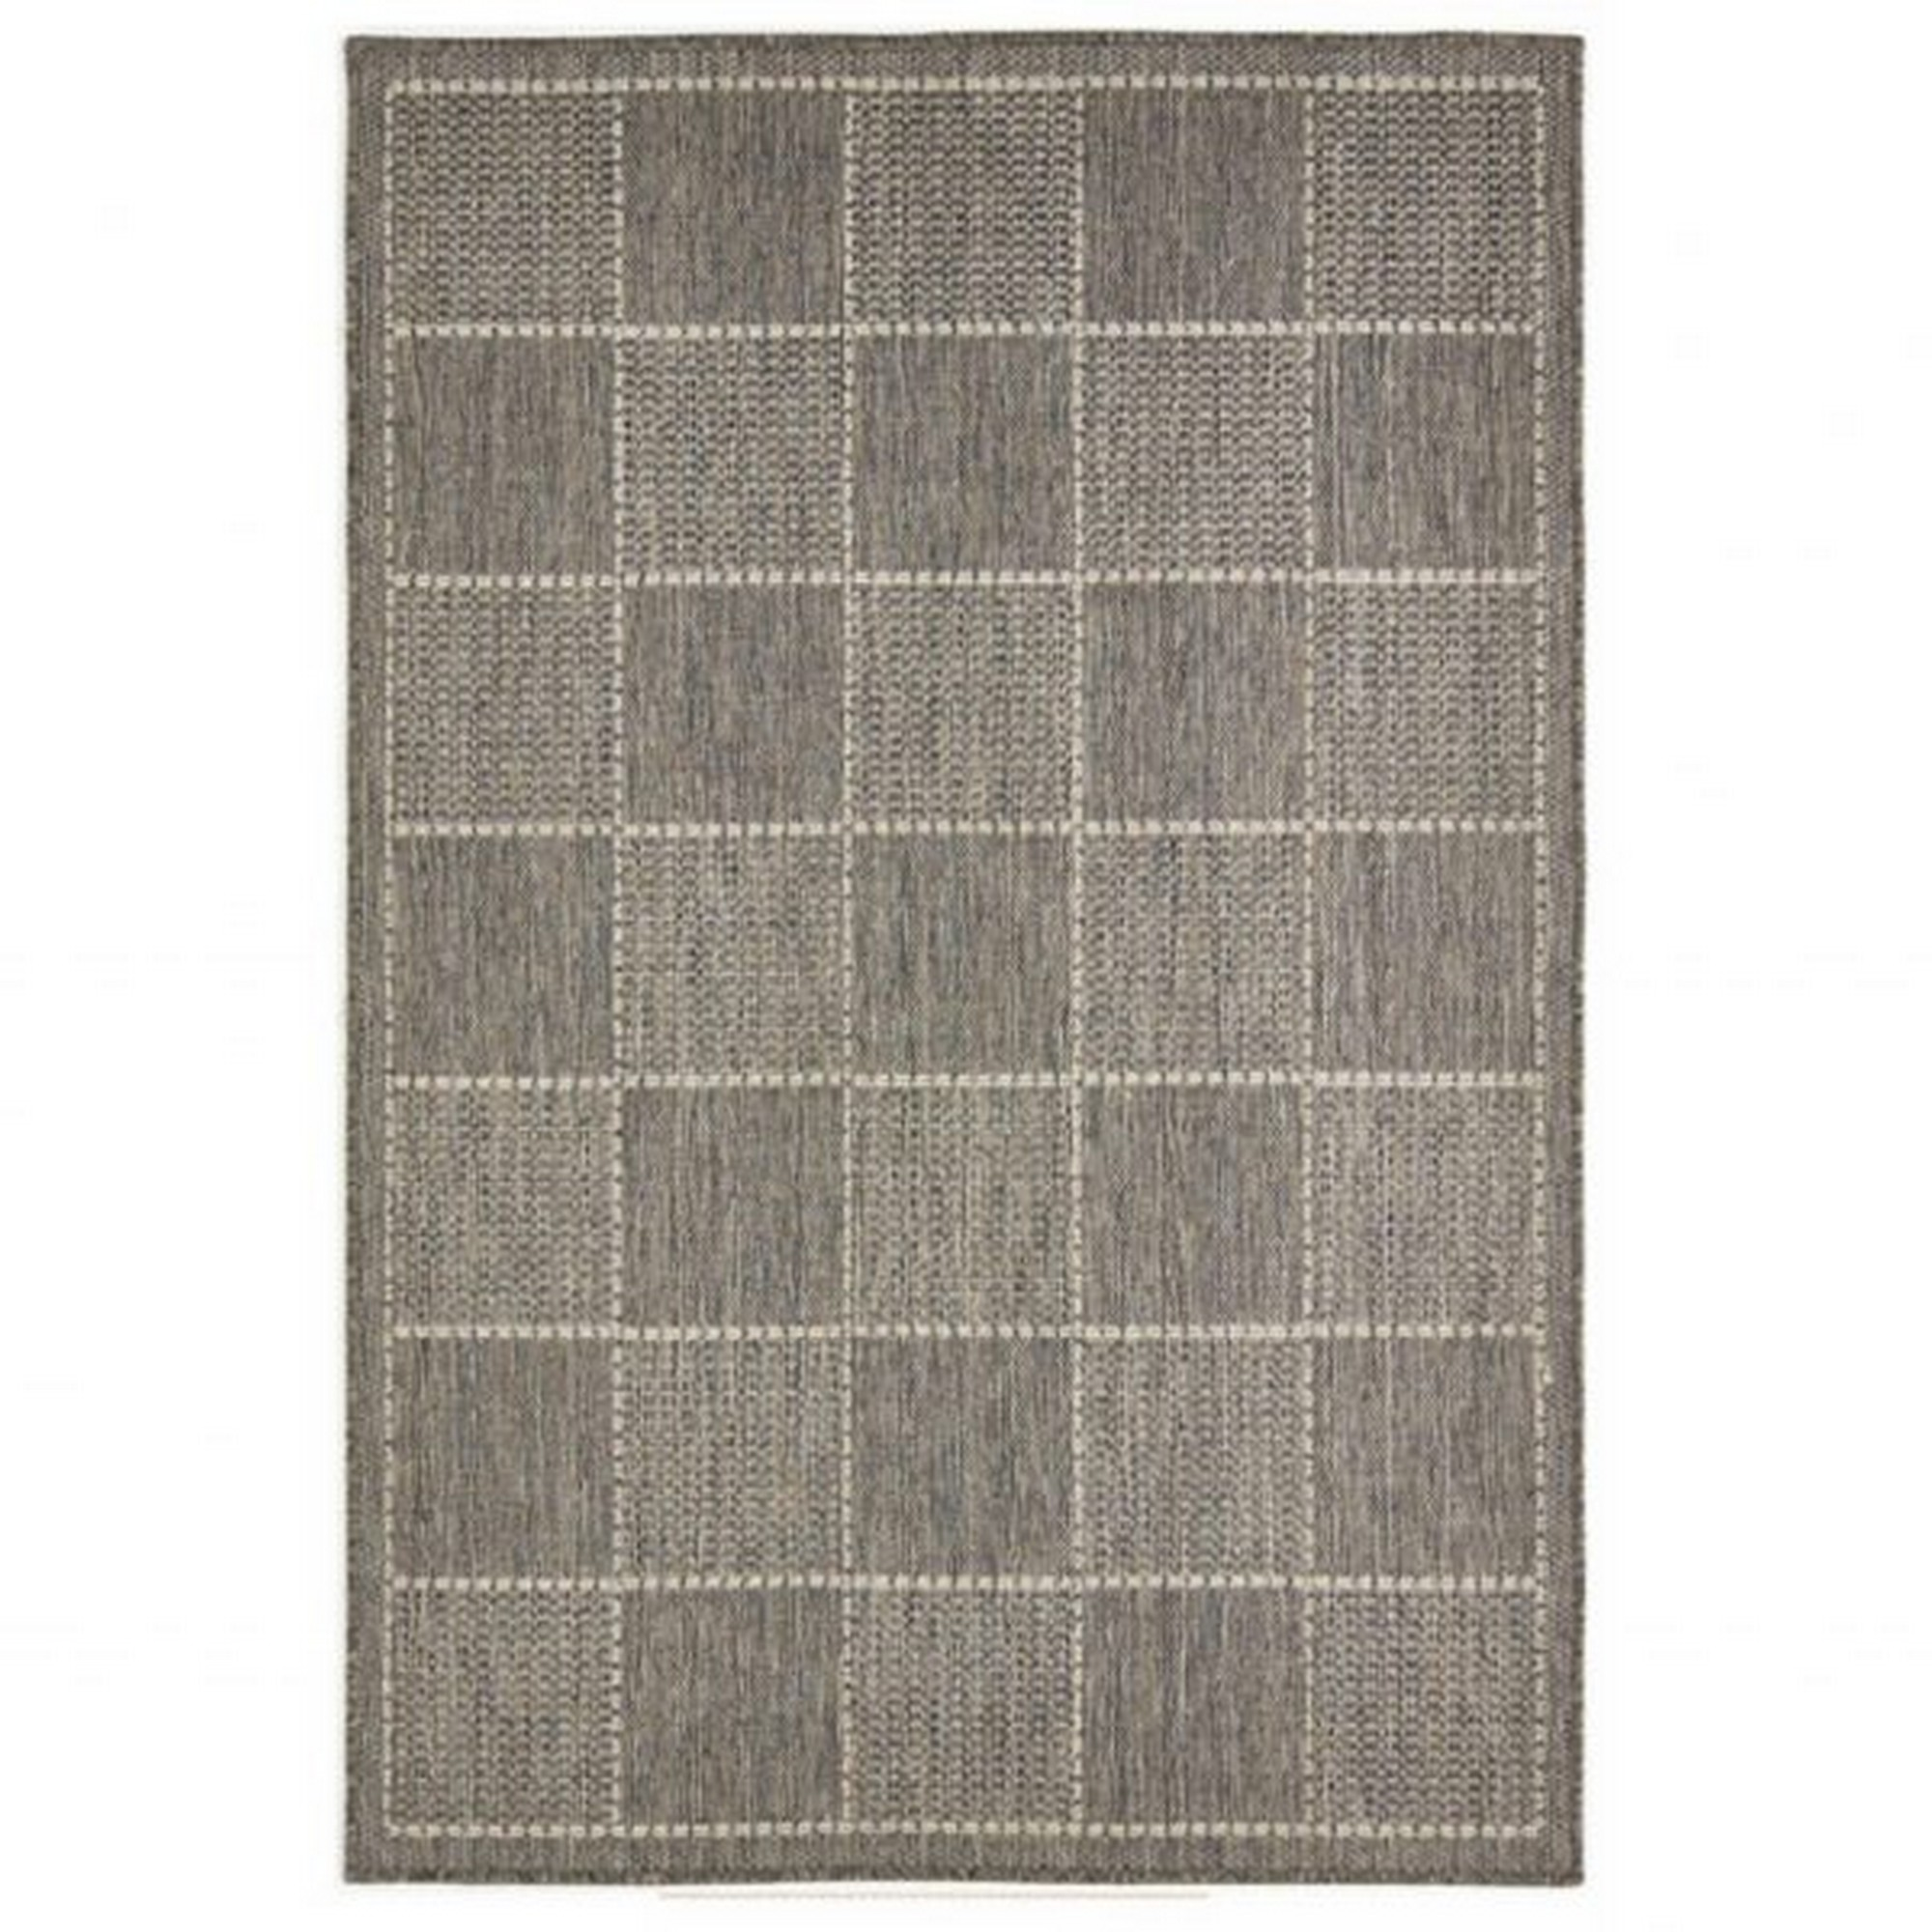 Super Sisalo Rugs in Grey